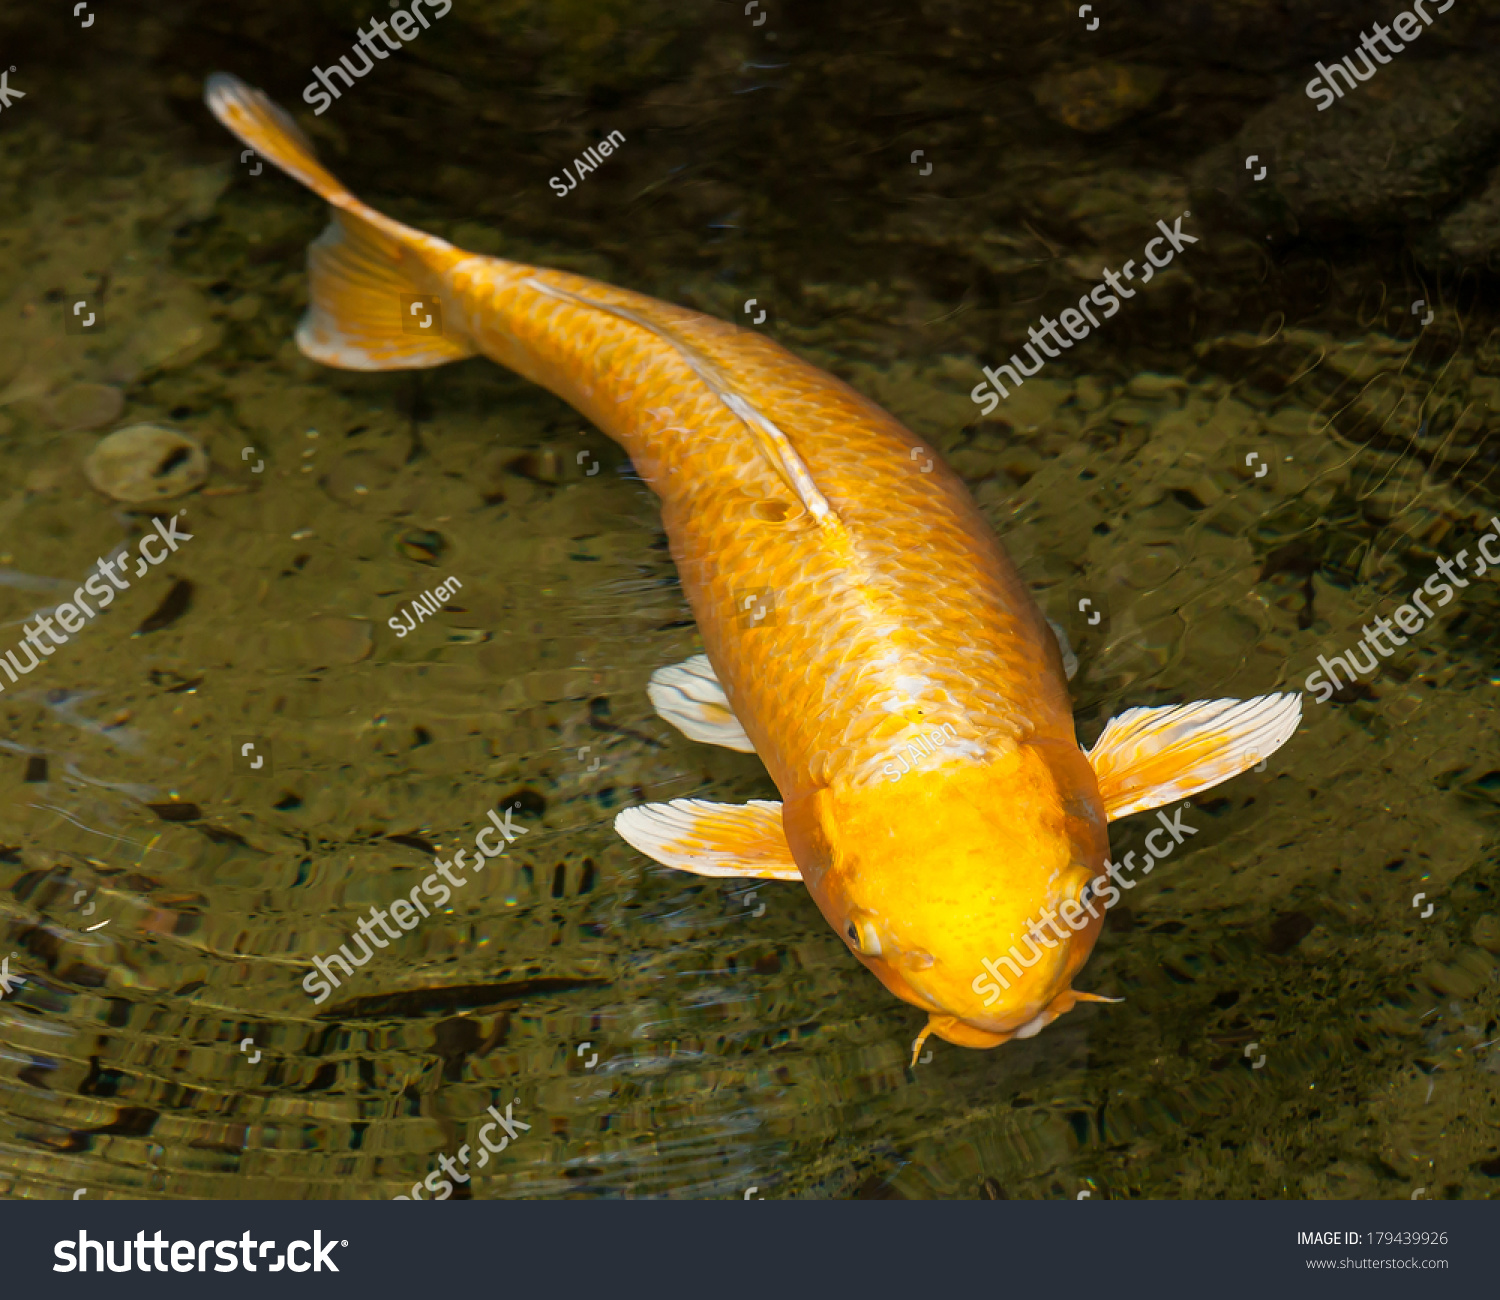 Golden ogon koi cyprinus carpio with white fins swimming for Golden ornamental pond fish crossword